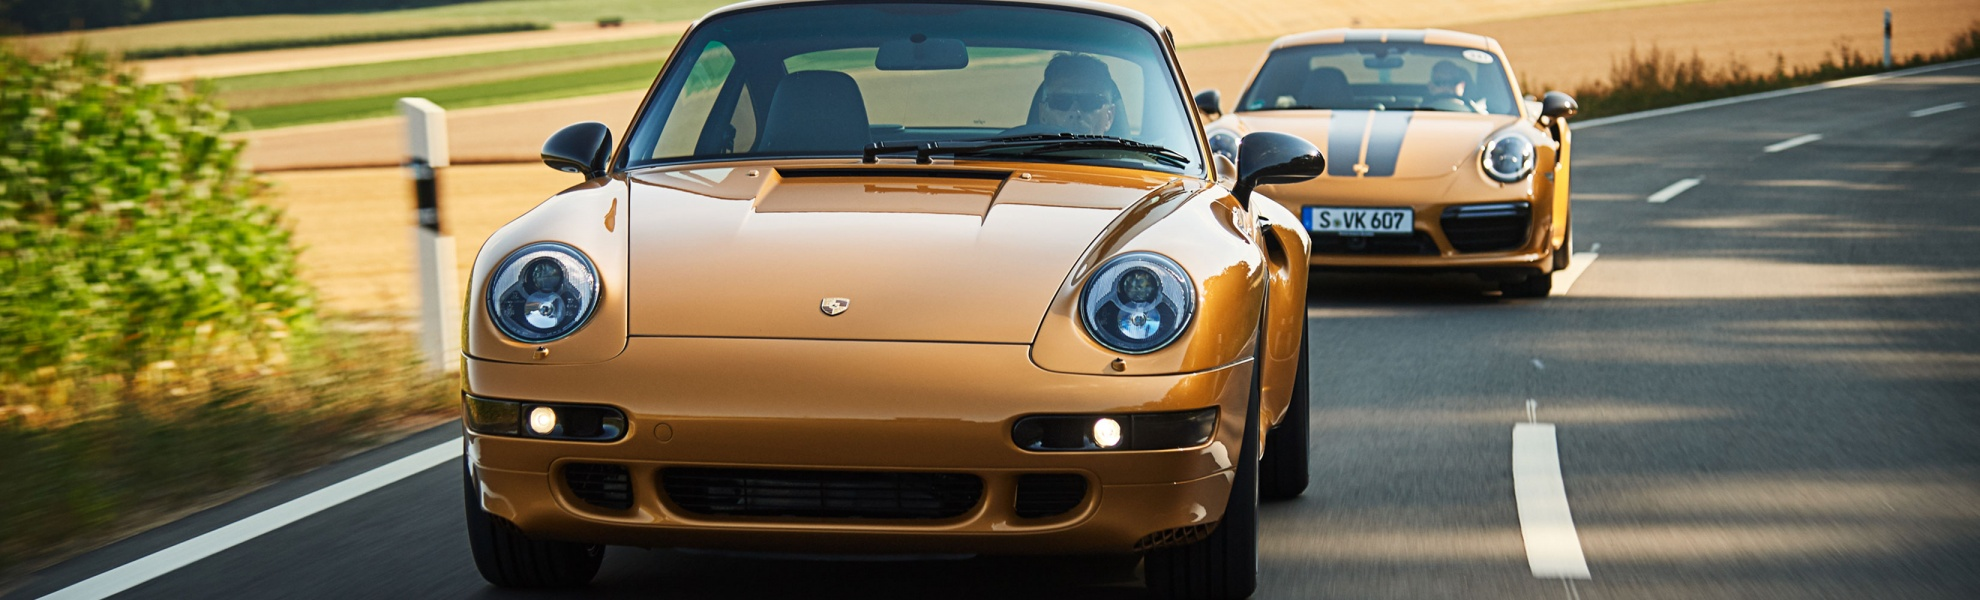 993_turbo_the_reveal_911_turbo_s_exclusive_series_classic_project_gold_2018_porsche.jpg